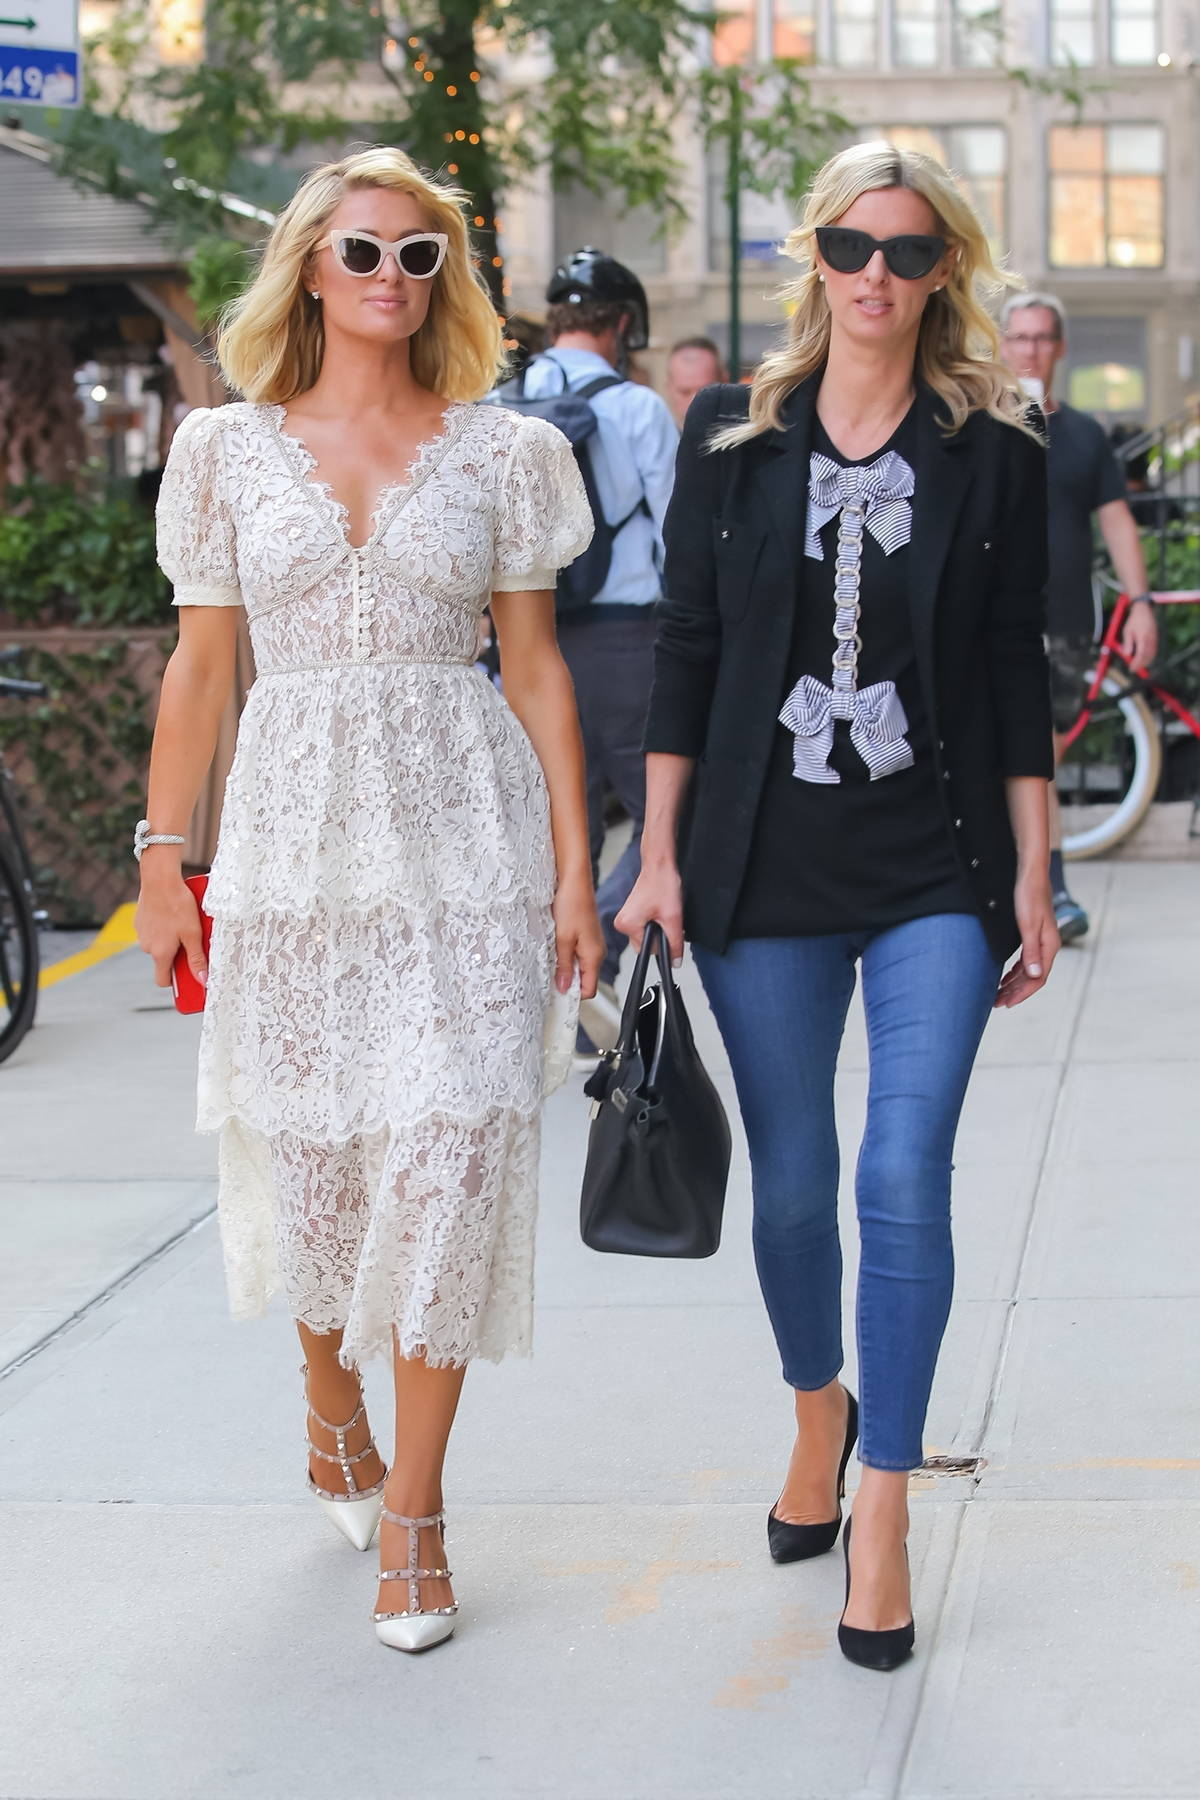 Nicky and Paris Hilton put on a stylish display as they step out together in New York City